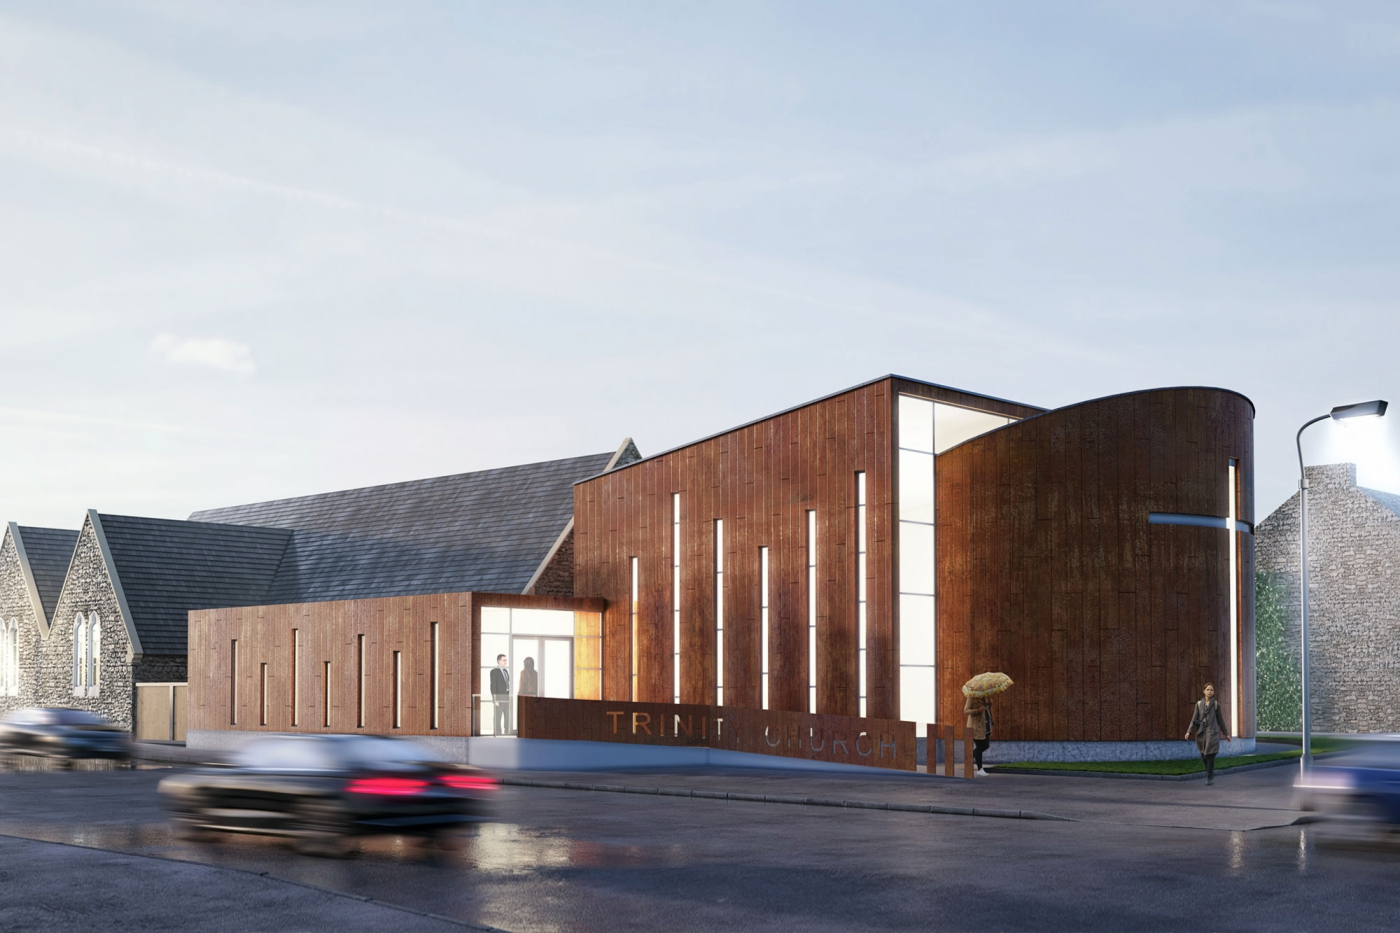 Trinity Church submitted for planning